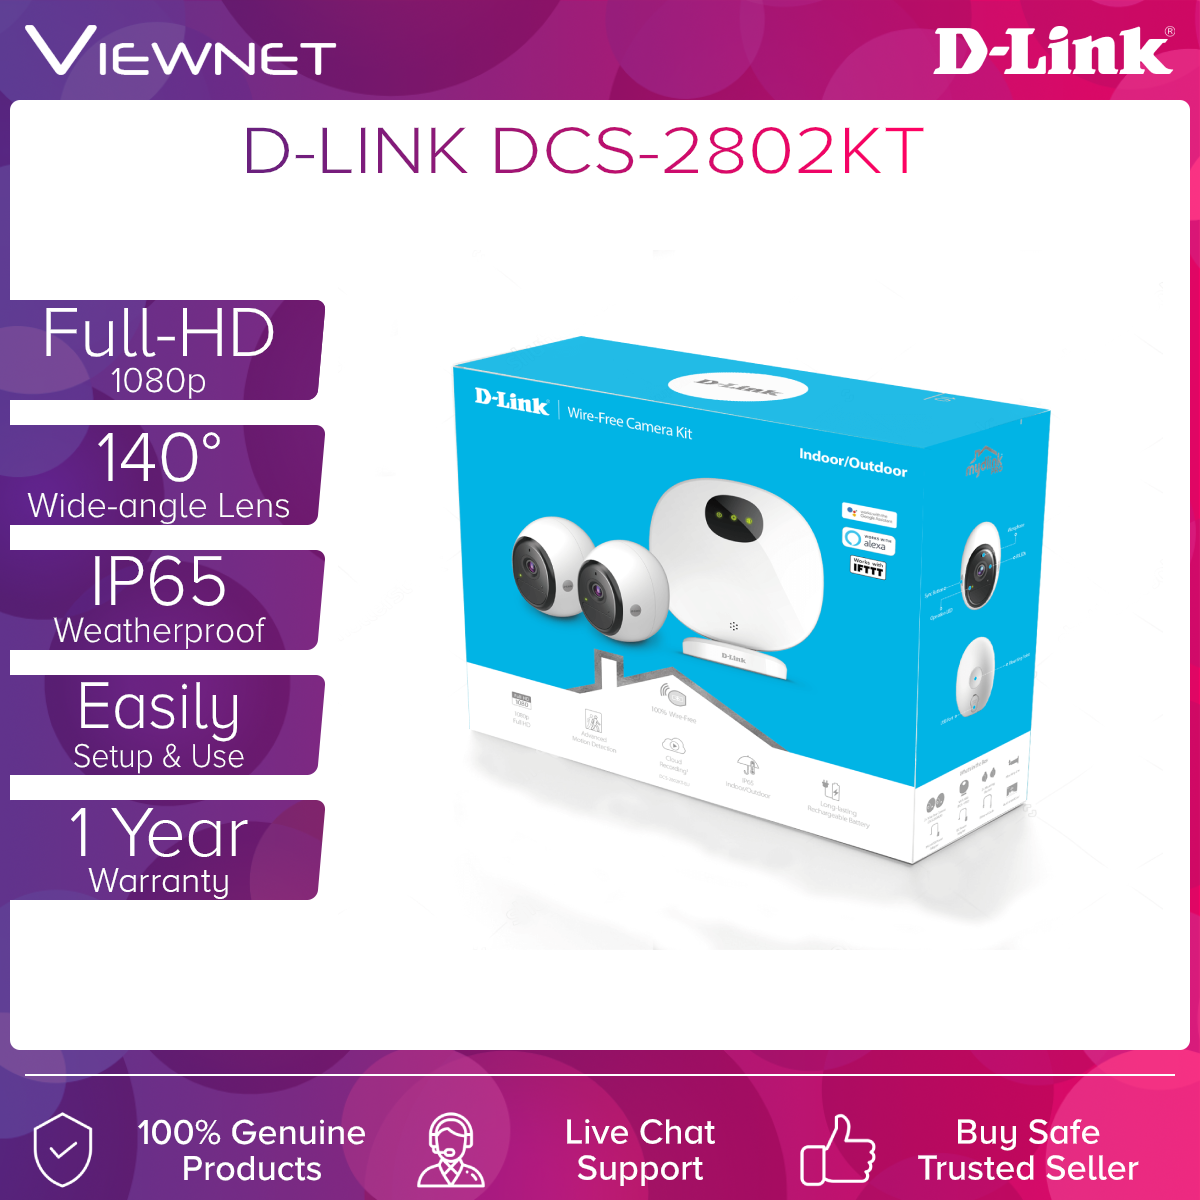 D-Link Wifi N300 Full HD 1080P 100% Wire-Free Outdoor IP Camera IP65 (DCS-2802KT)